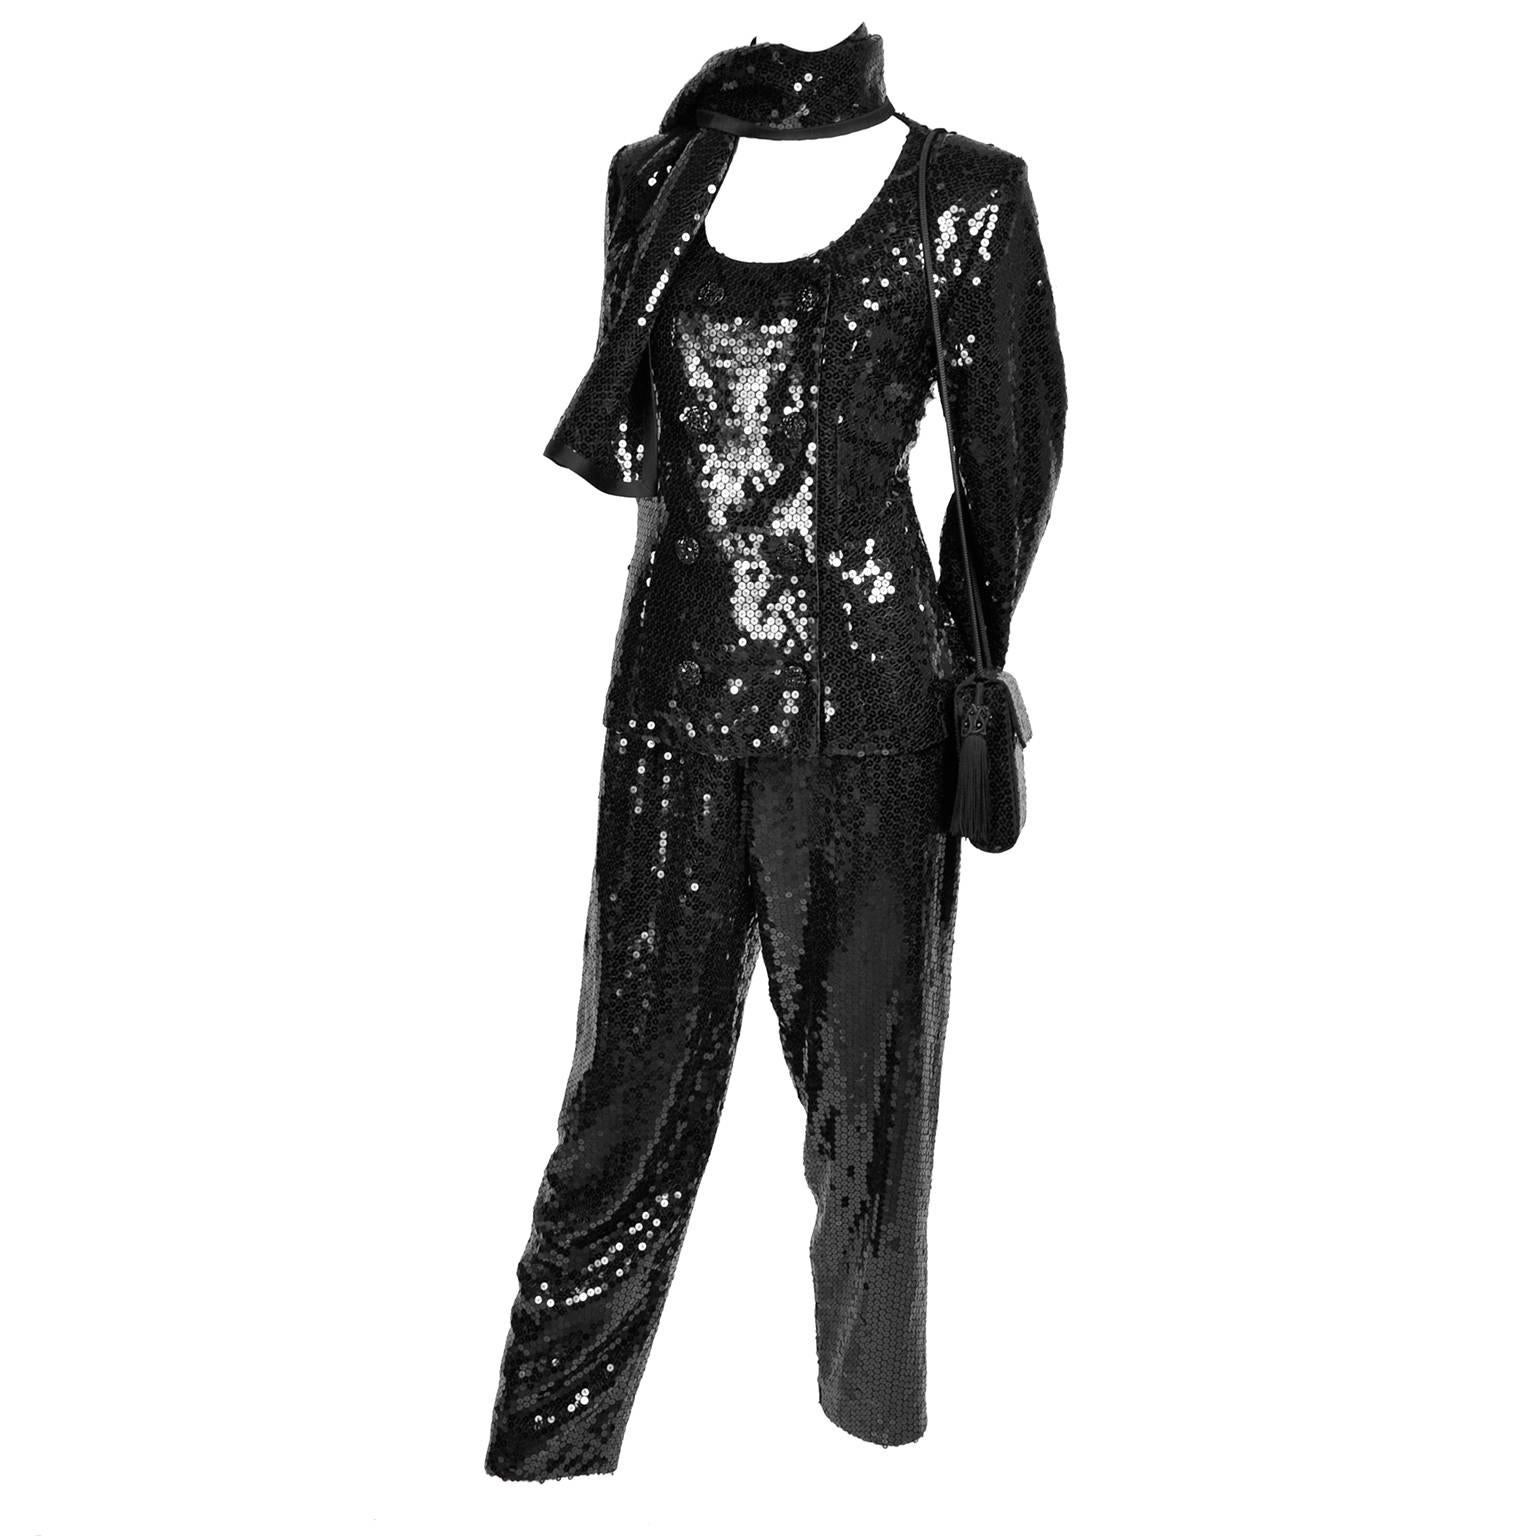 Vintage YSL Yves Saint Laurent Black Sequin Evening Pant Suit W/ Top Bag & Scarf